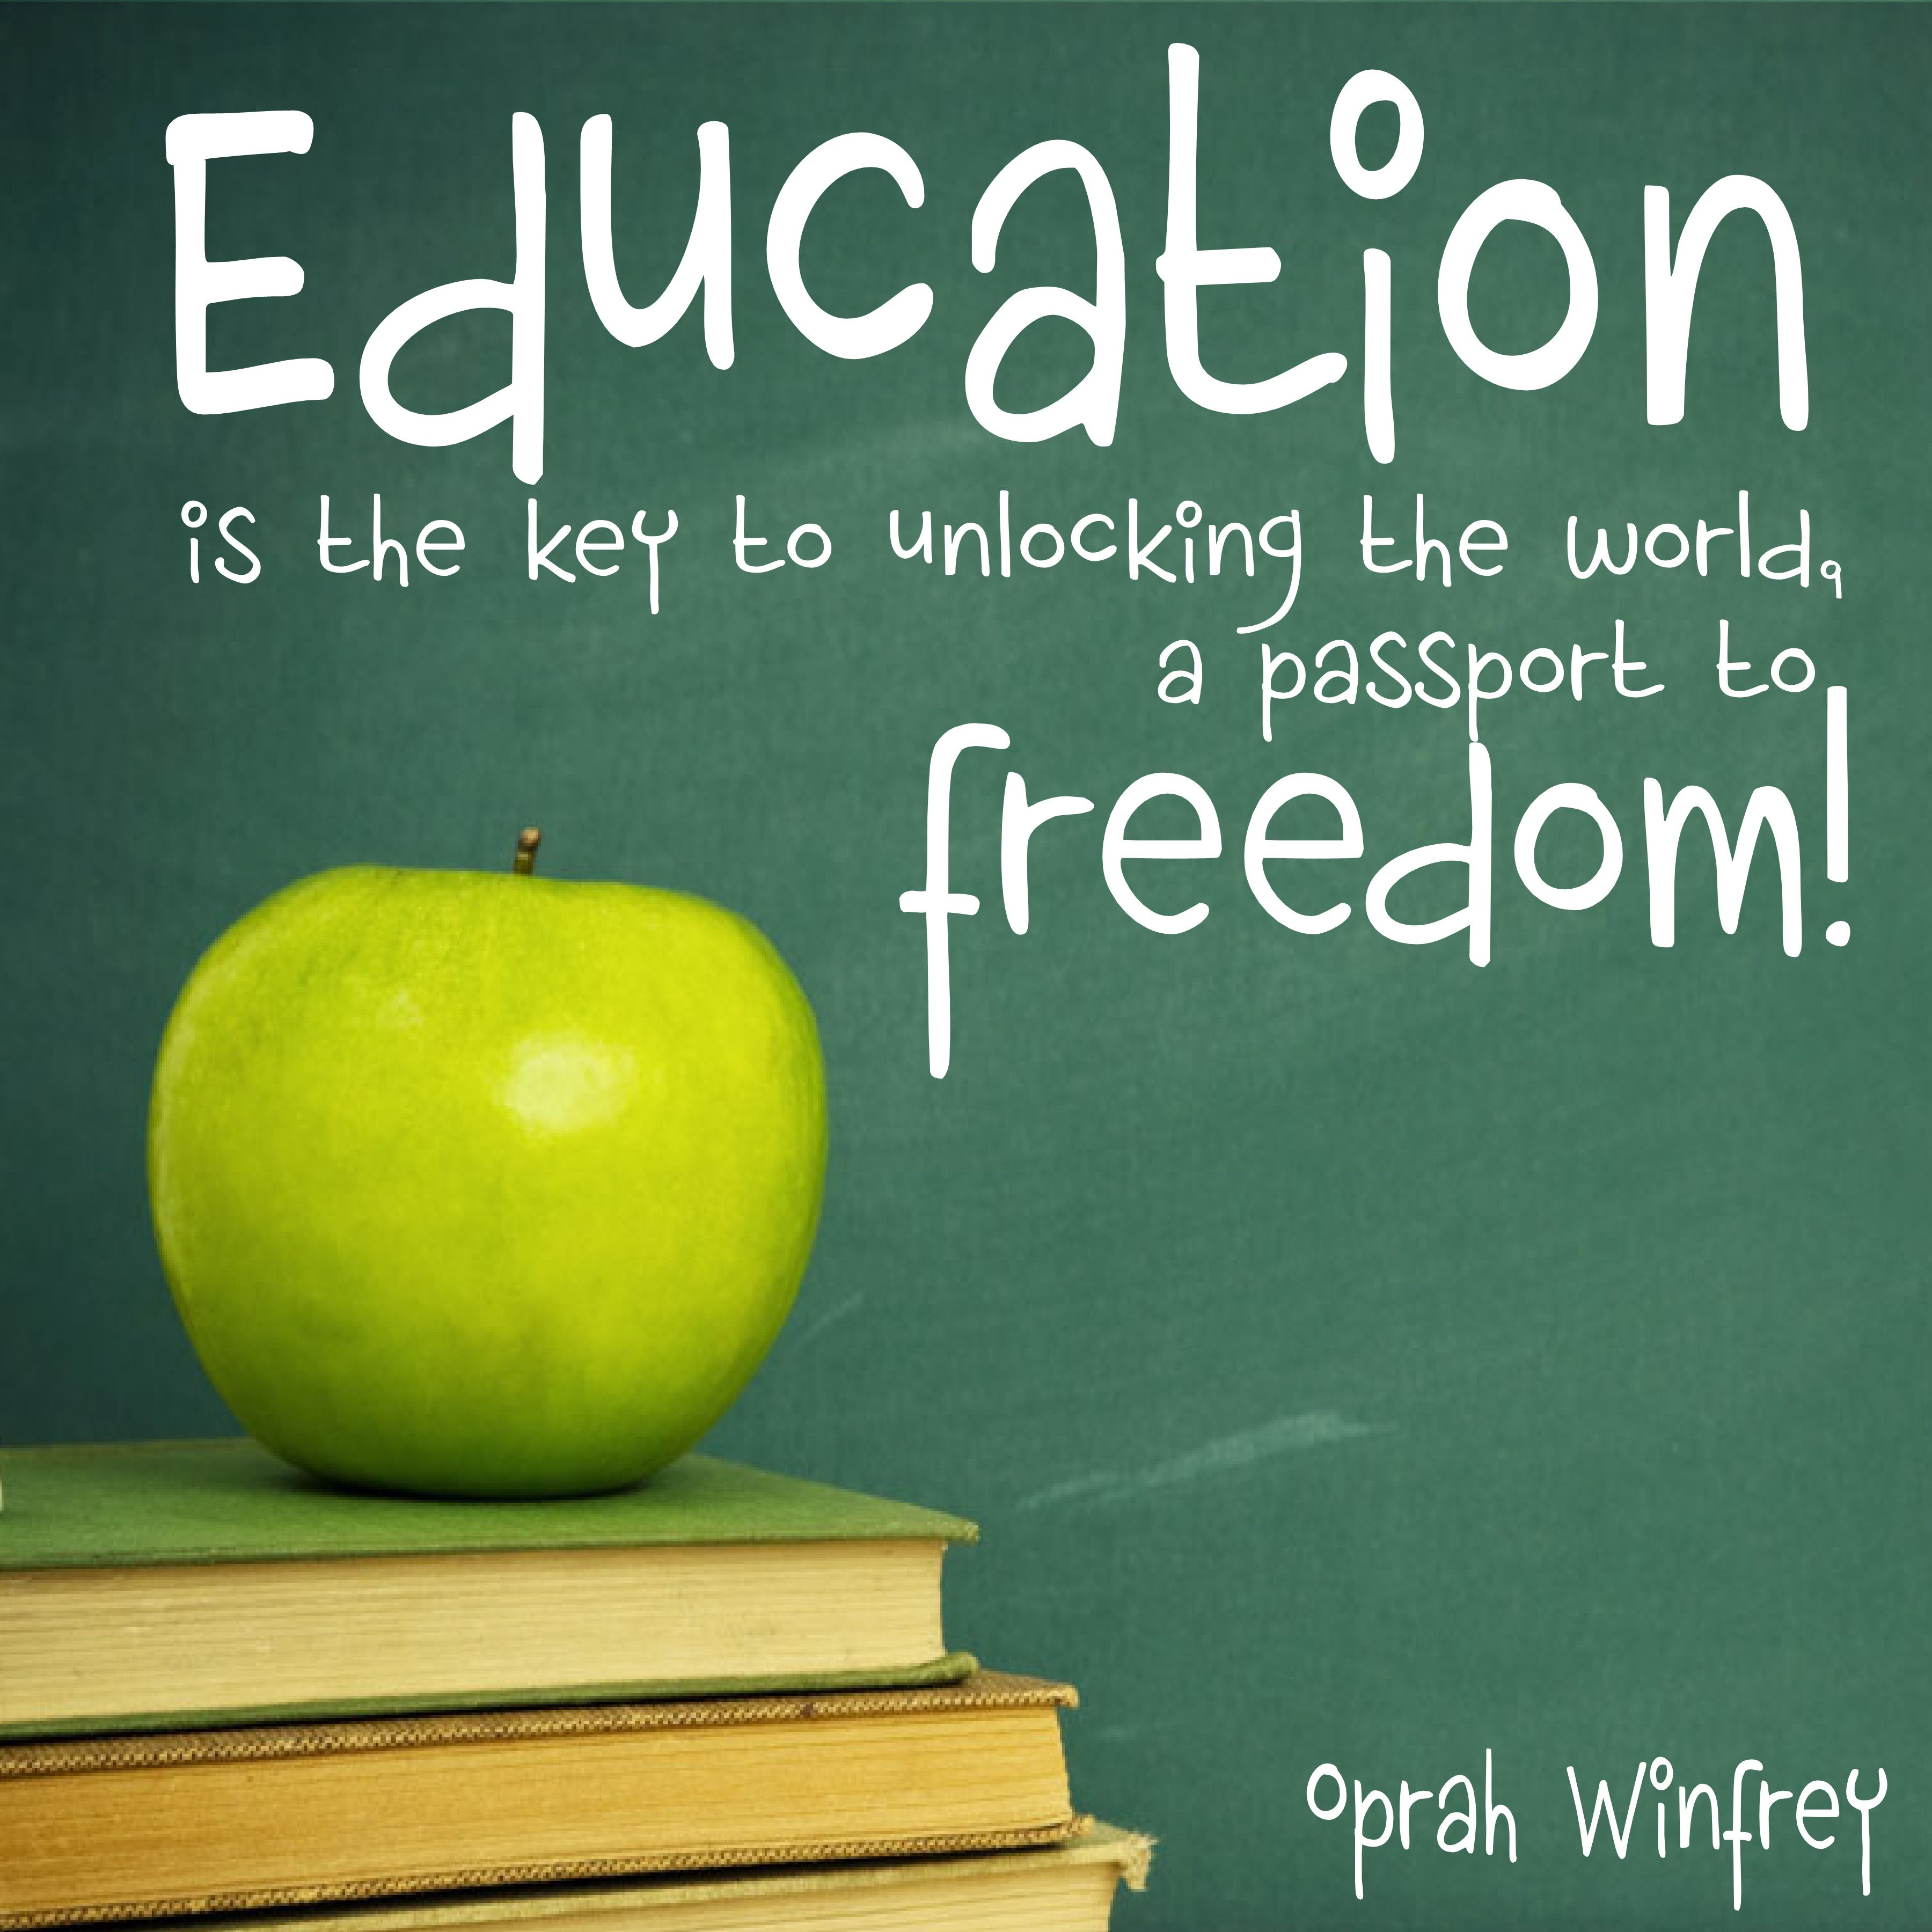 Education is the key to unlocking the world, a passport to freedom ...